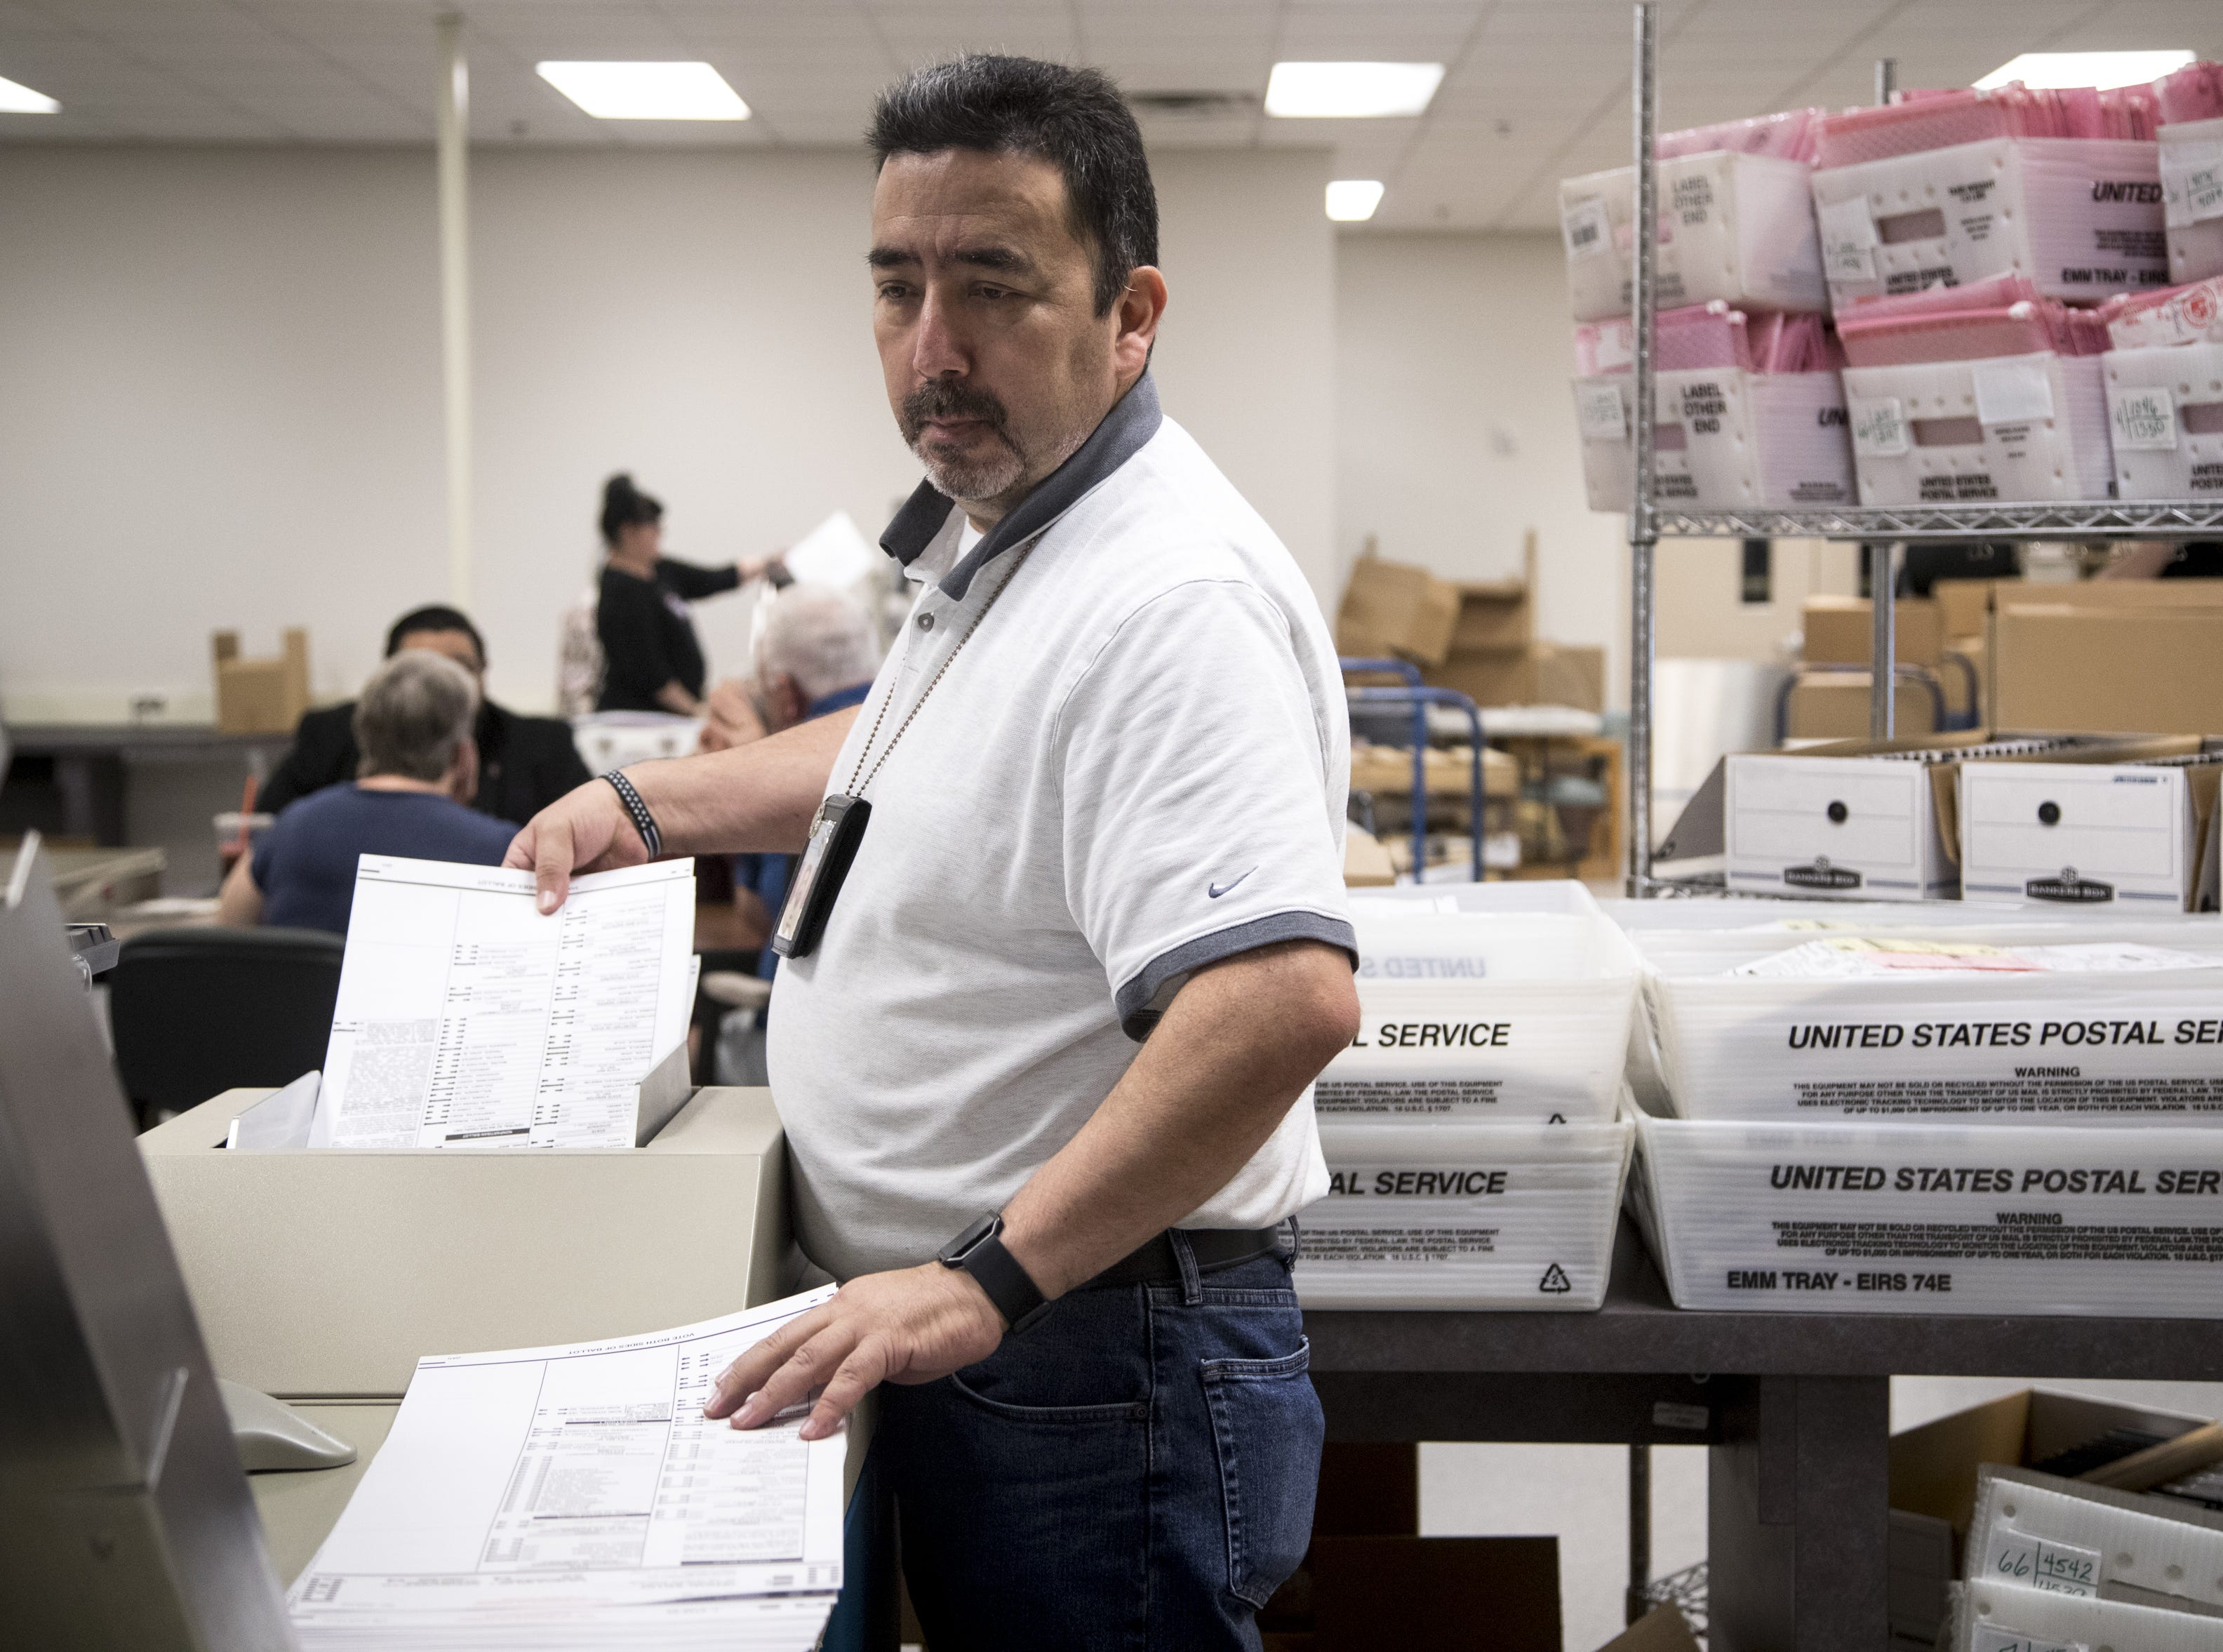 More than 600K ballots left to count, reflecting record midterm turnout, Republic projects